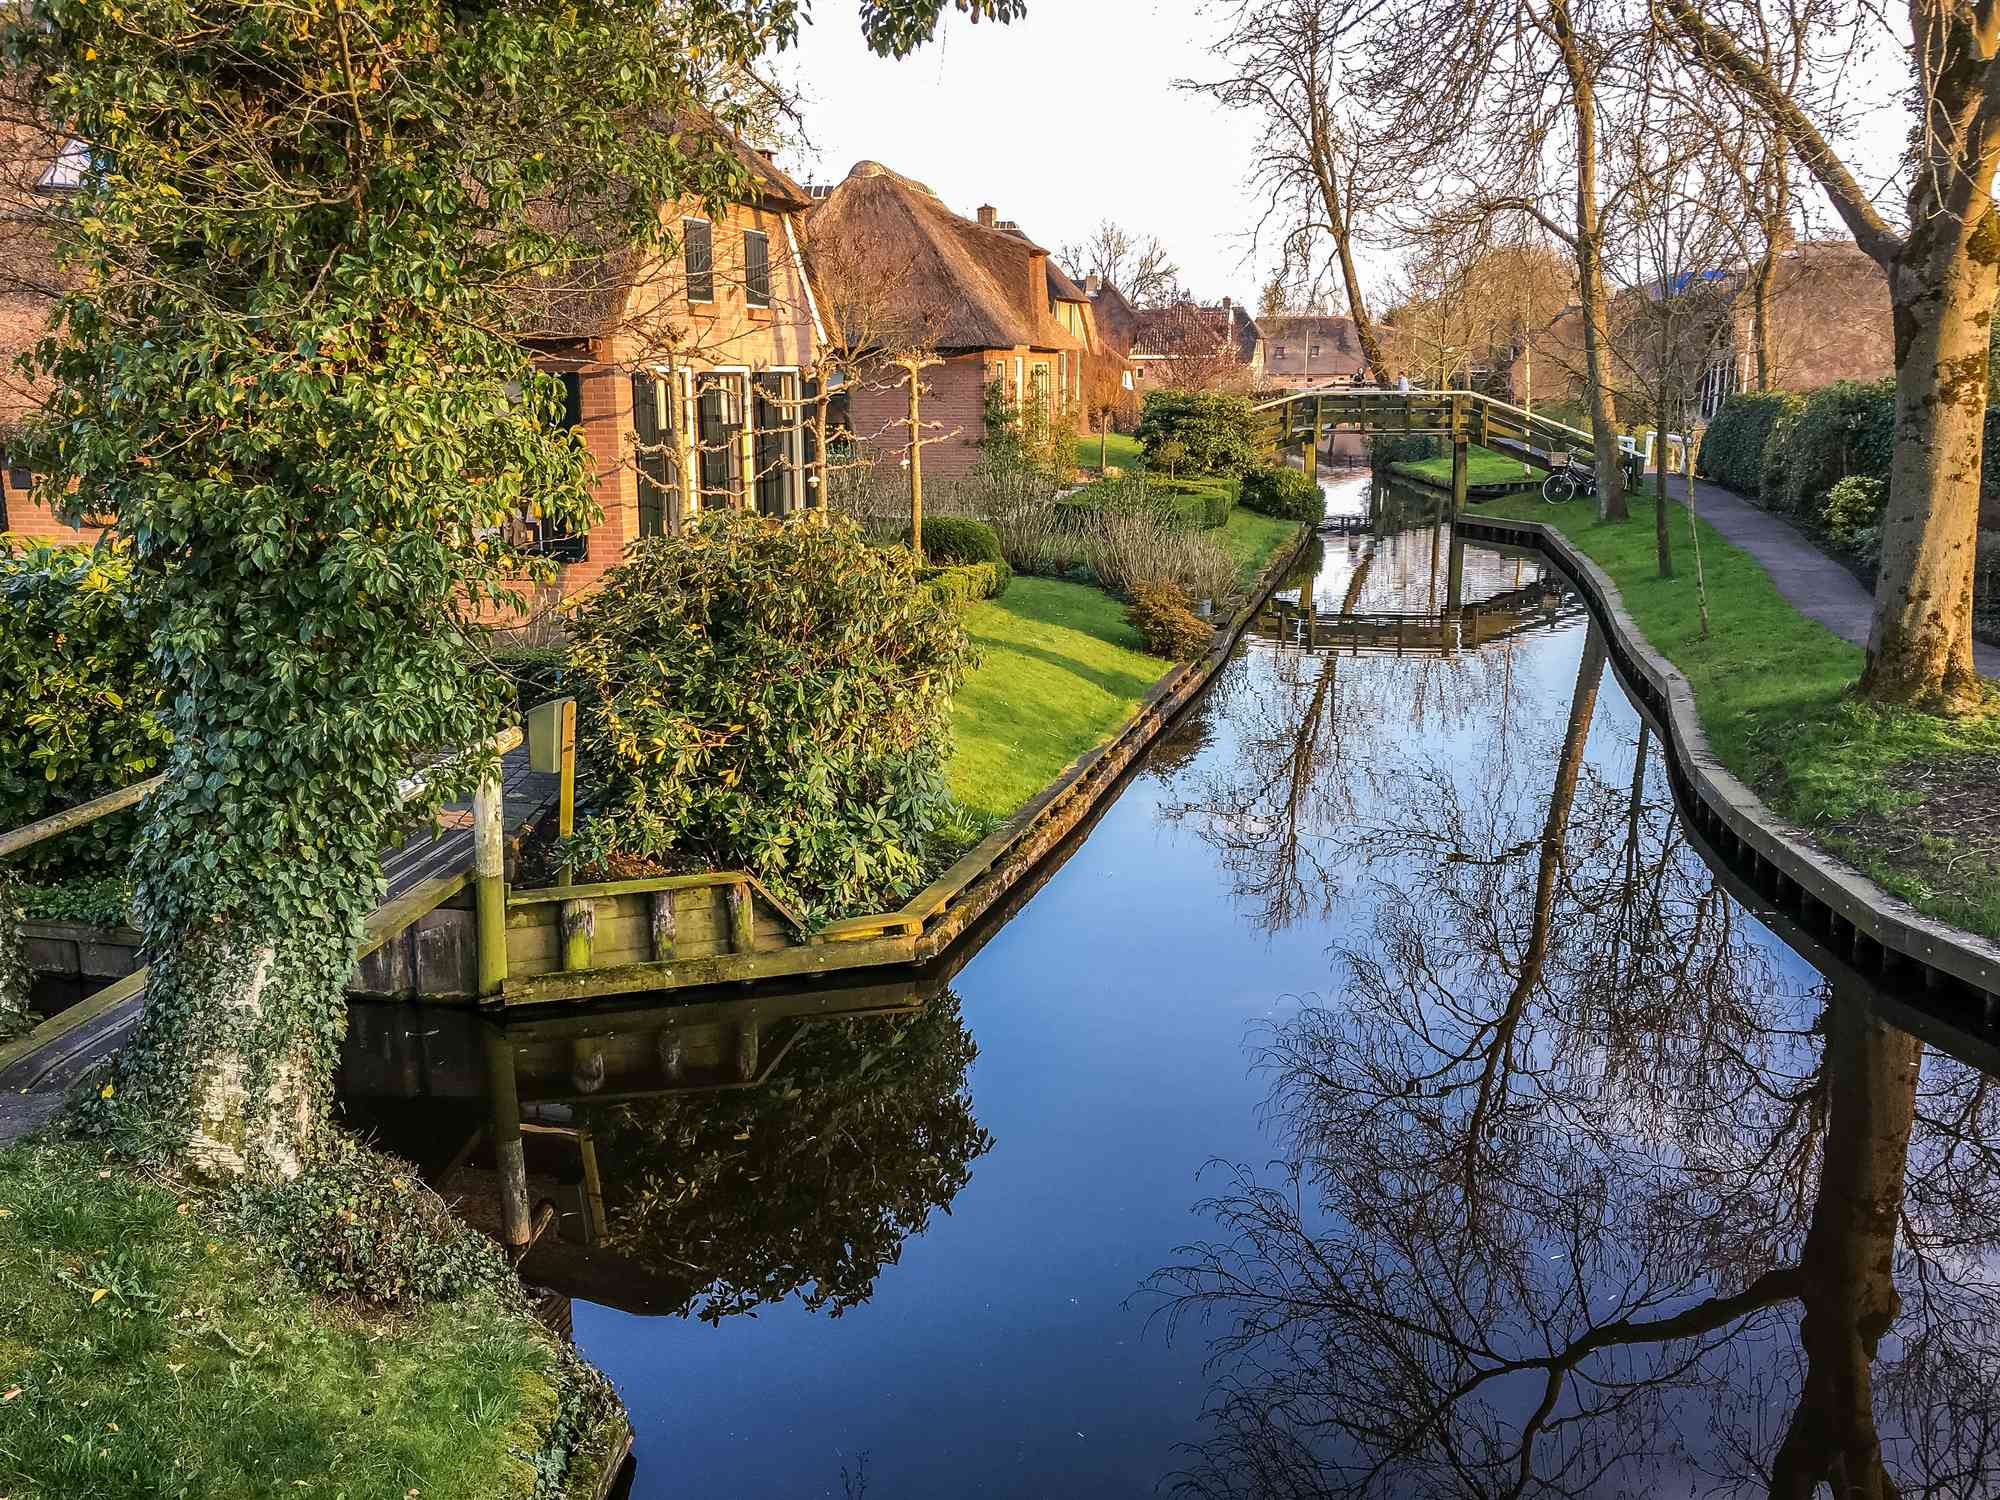 Canal in a residential area with homes and trees along the water in Giethoorn